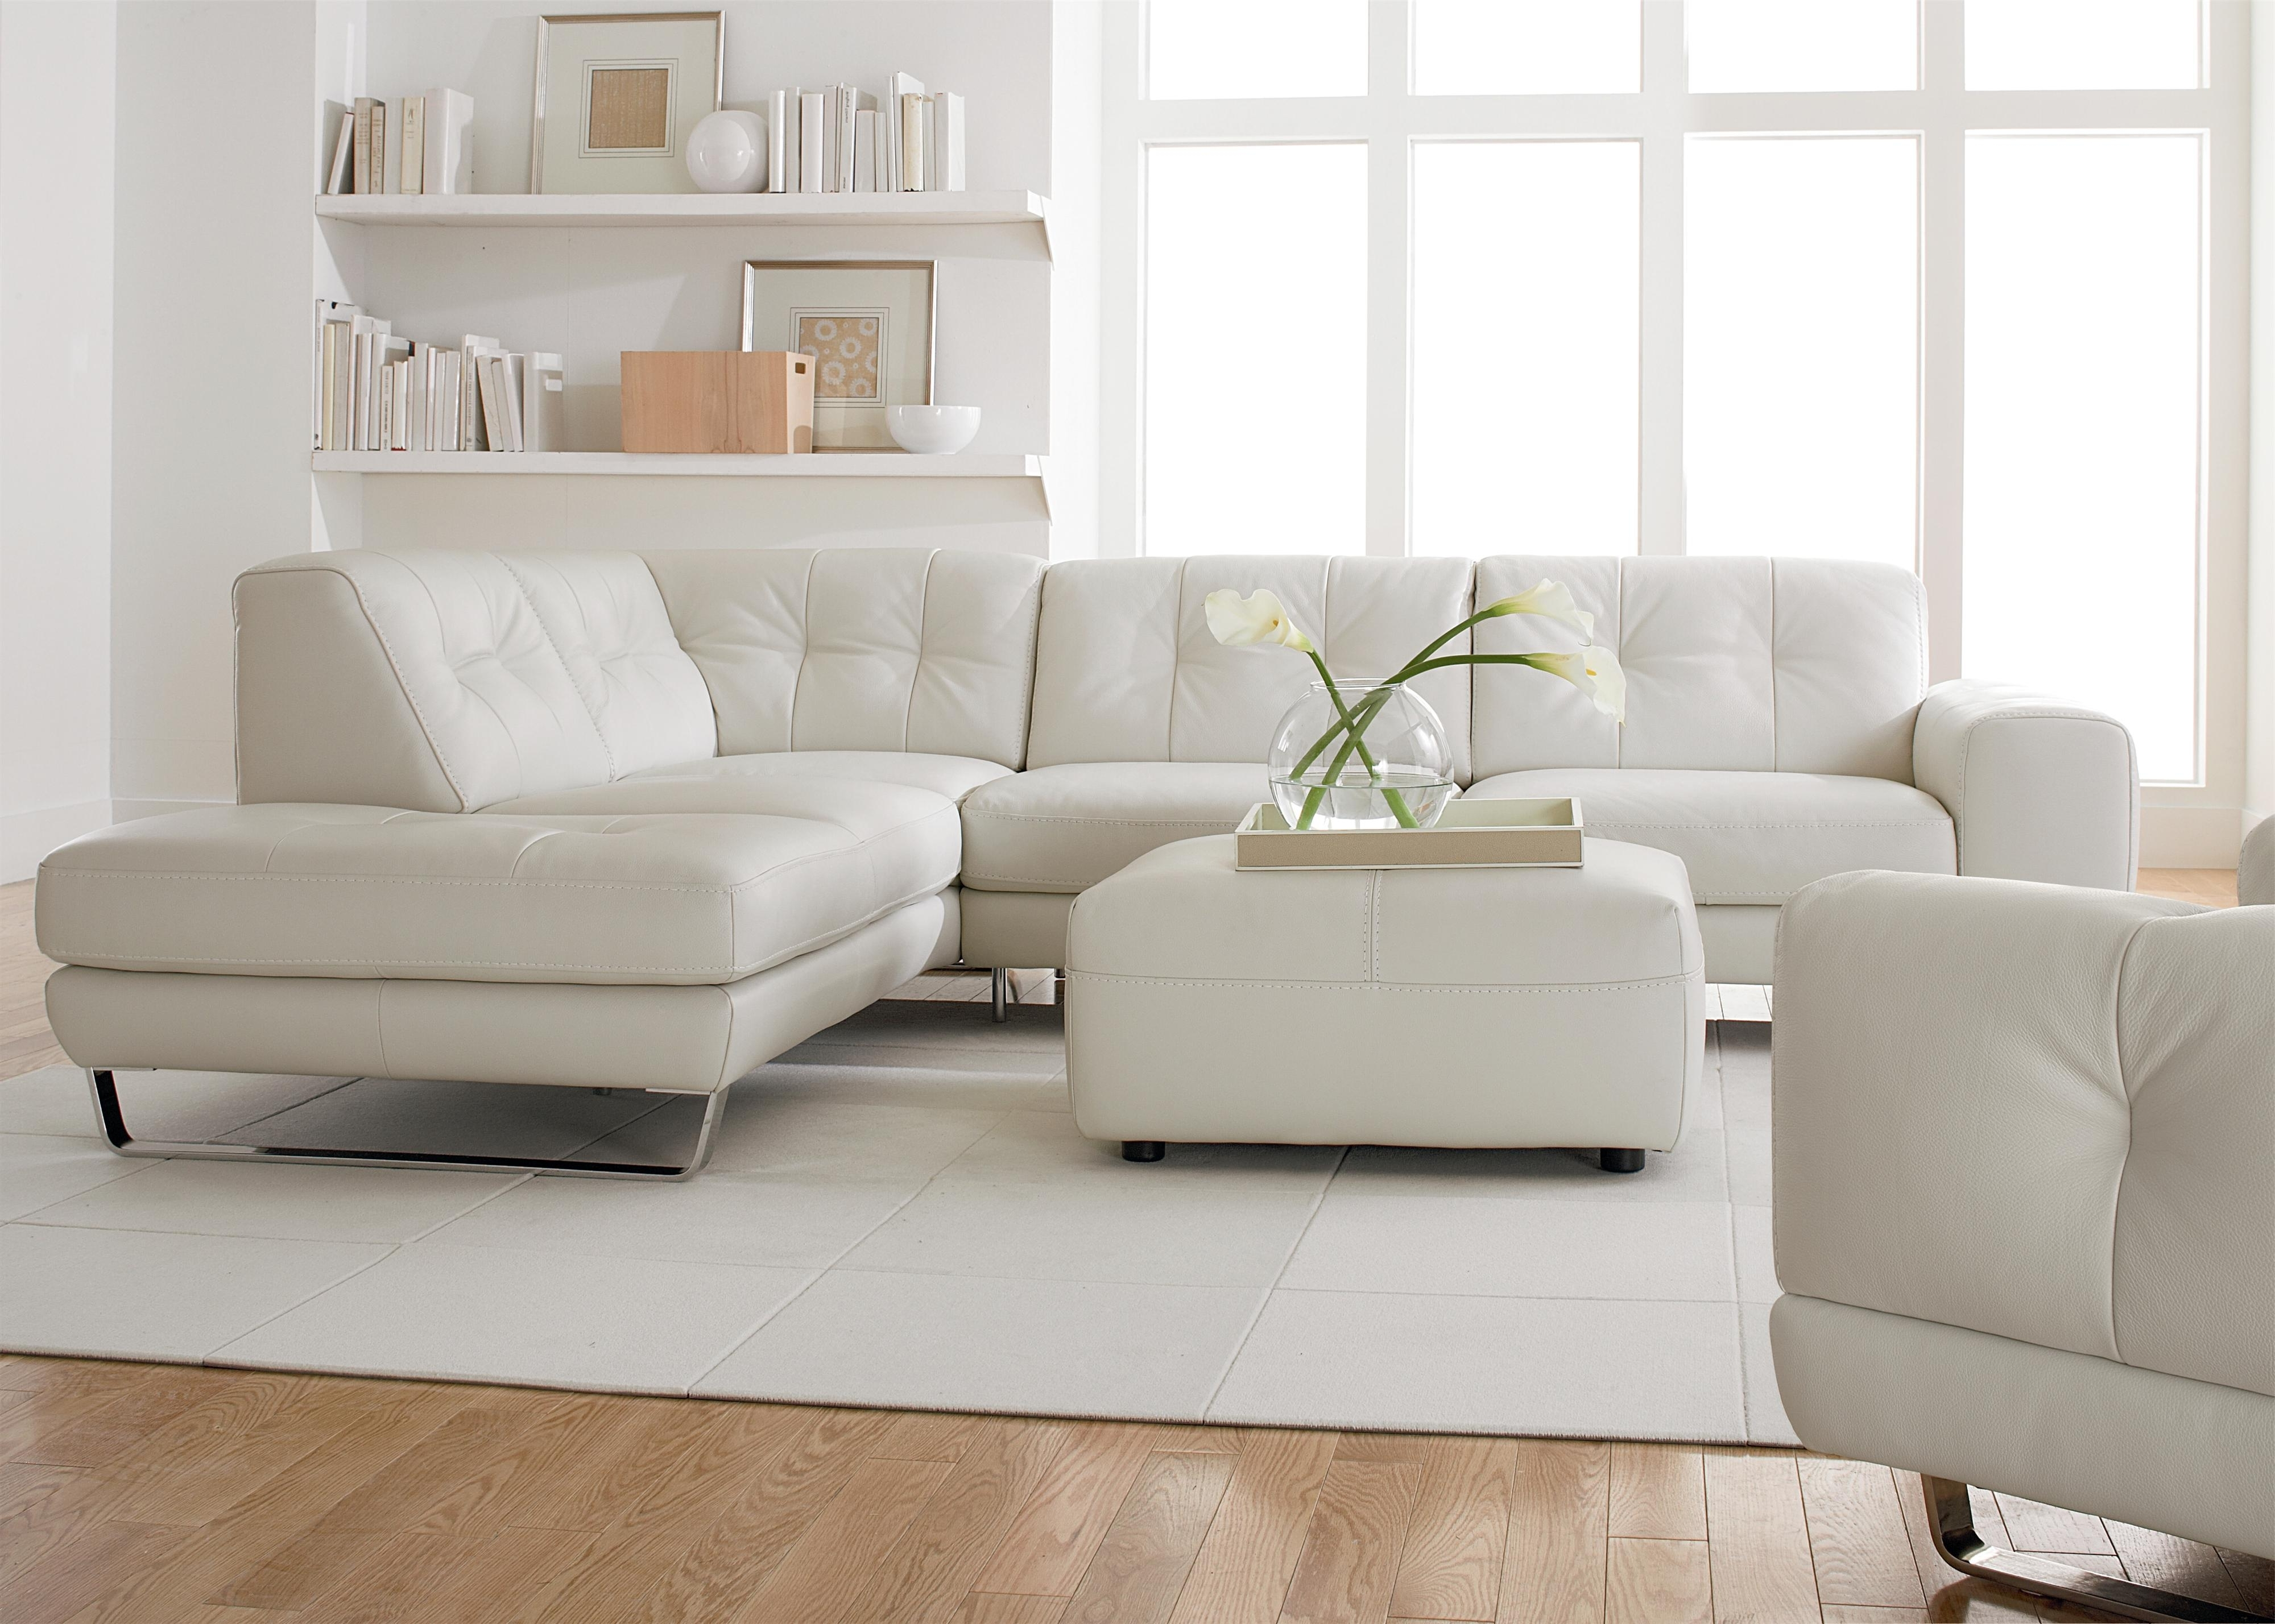 Simple Modern Minimalist Living Room Decoration With White Leather For 2018 Tufted Sectional Sofas With Chaise (View 13 of 15)